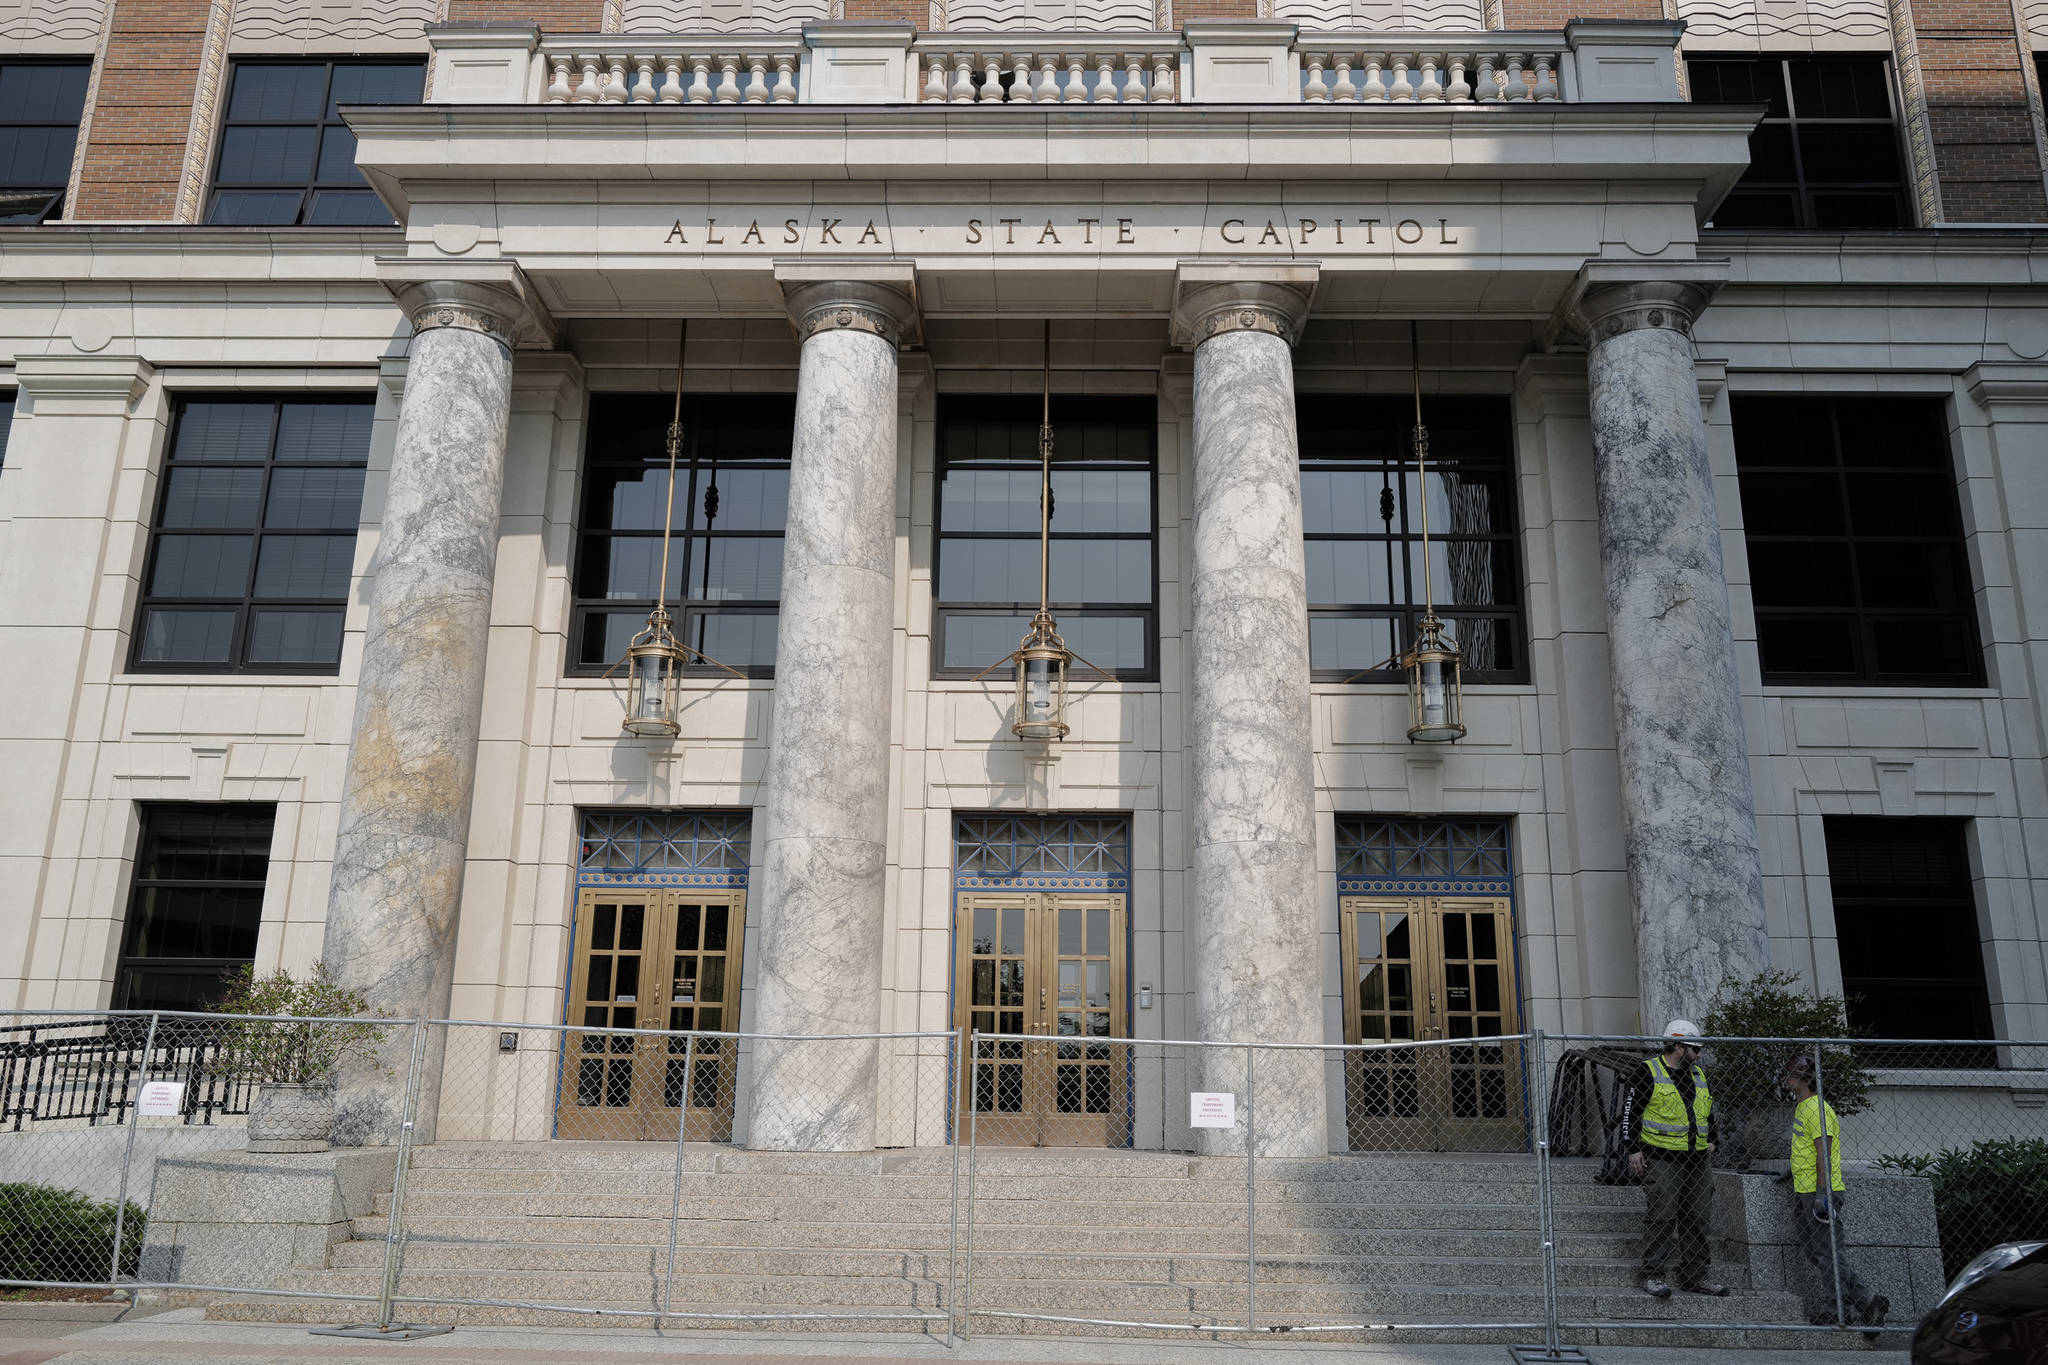 Fencing is installed in front of the Alaska State Capitol on Tuesday, July 2, 2019. The marble pillars, quarried in Tokeen, Alaska, will be sealed and ground smooth as part of the building's remodeling project. (Michael Penn   Juneau Empire)